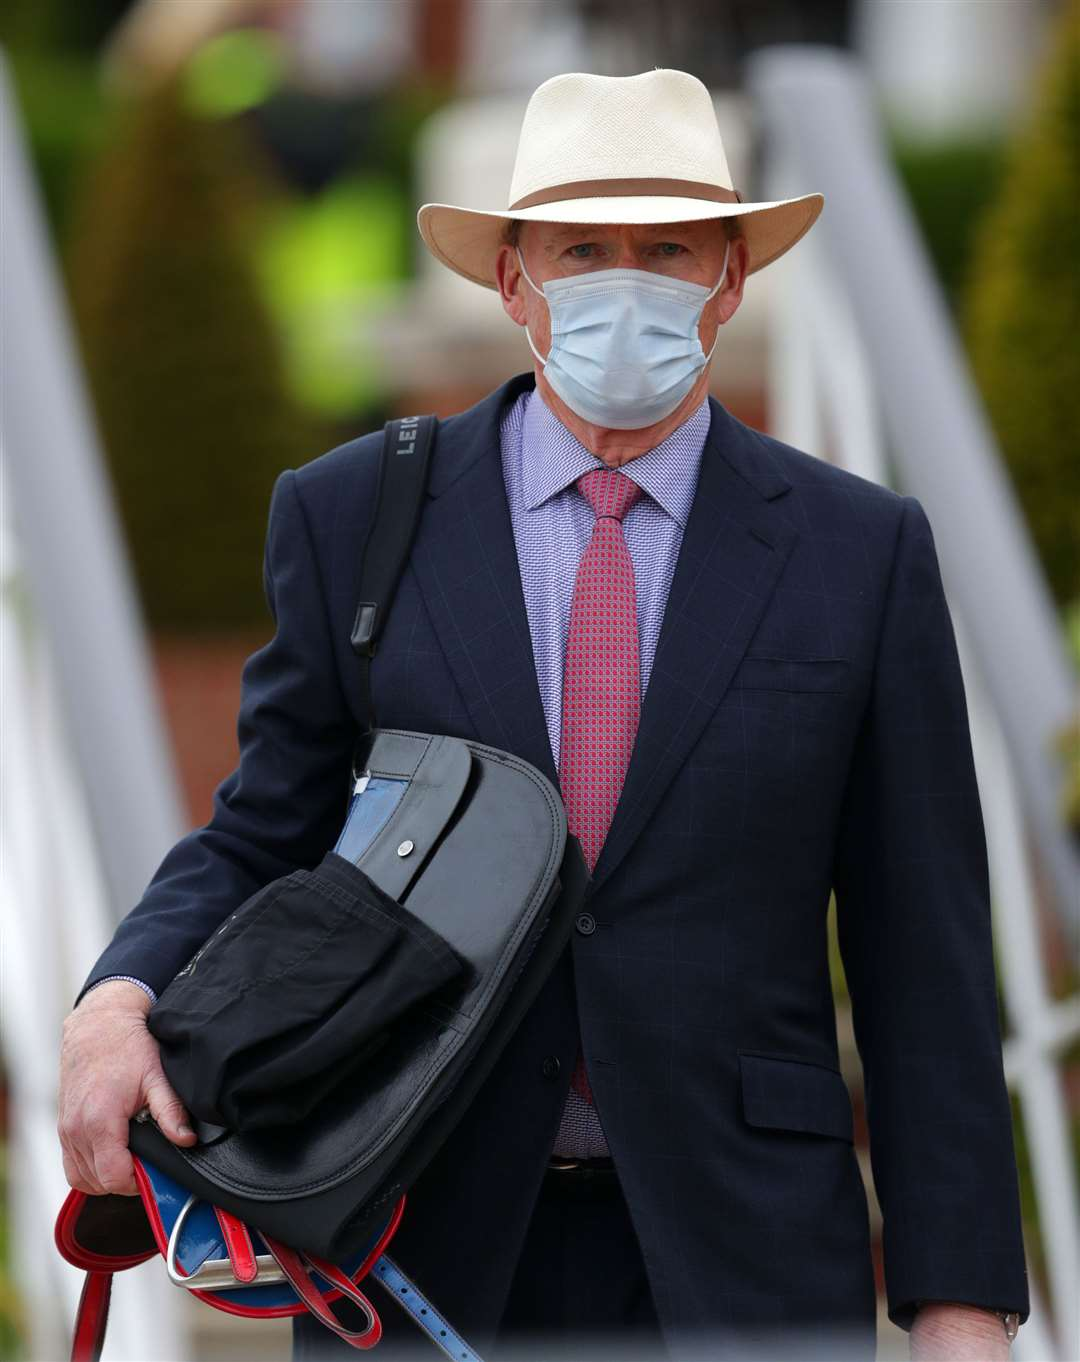 Newmarket trainer John Gosden has ended Royal Ascot as the top trainerPicture: David Davies/PA Wire